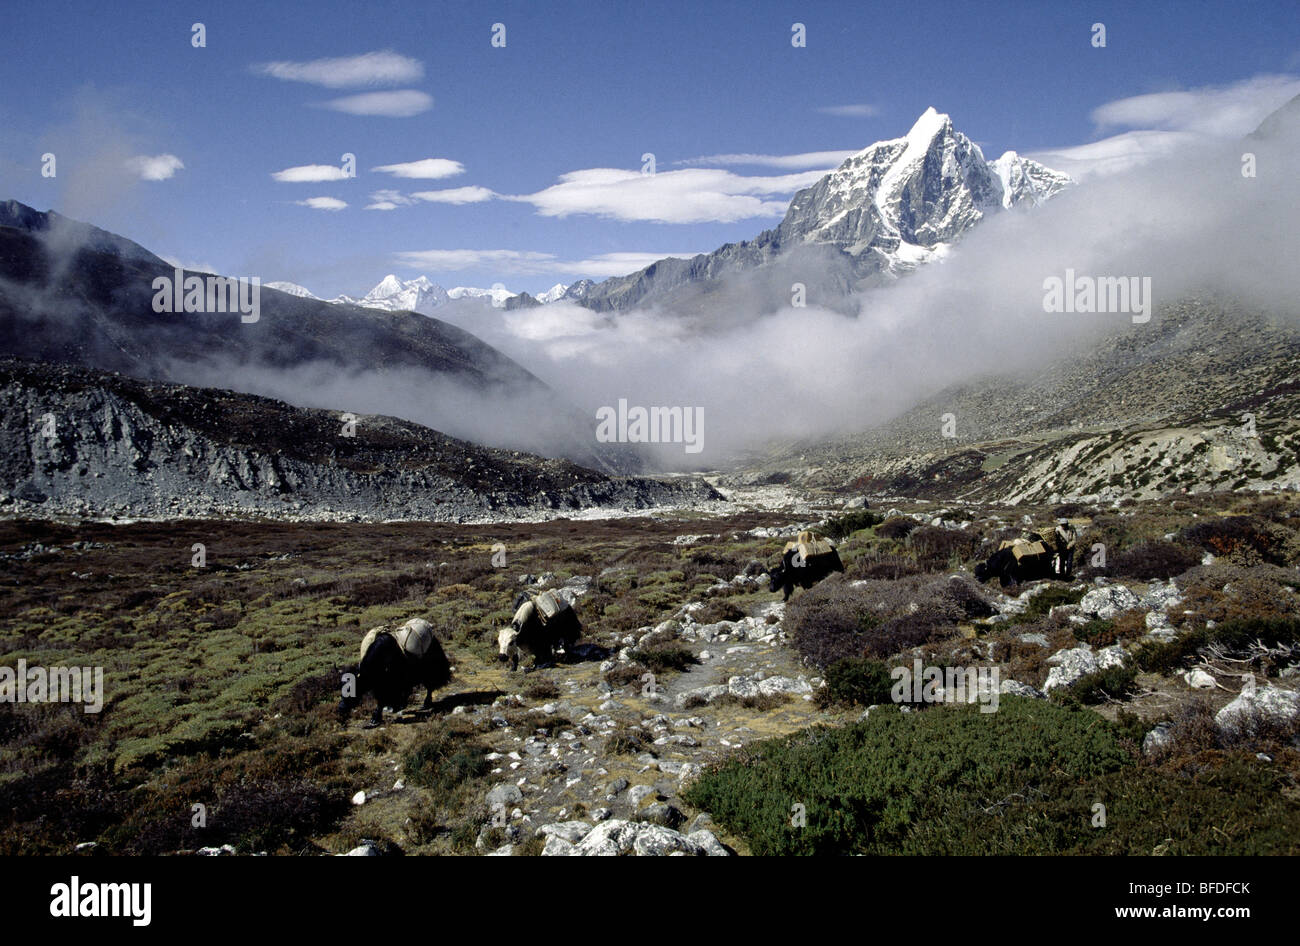 Yak caravans intermingle in a brilliant landscape cradled by the mountains of Nepal. - Stock Image